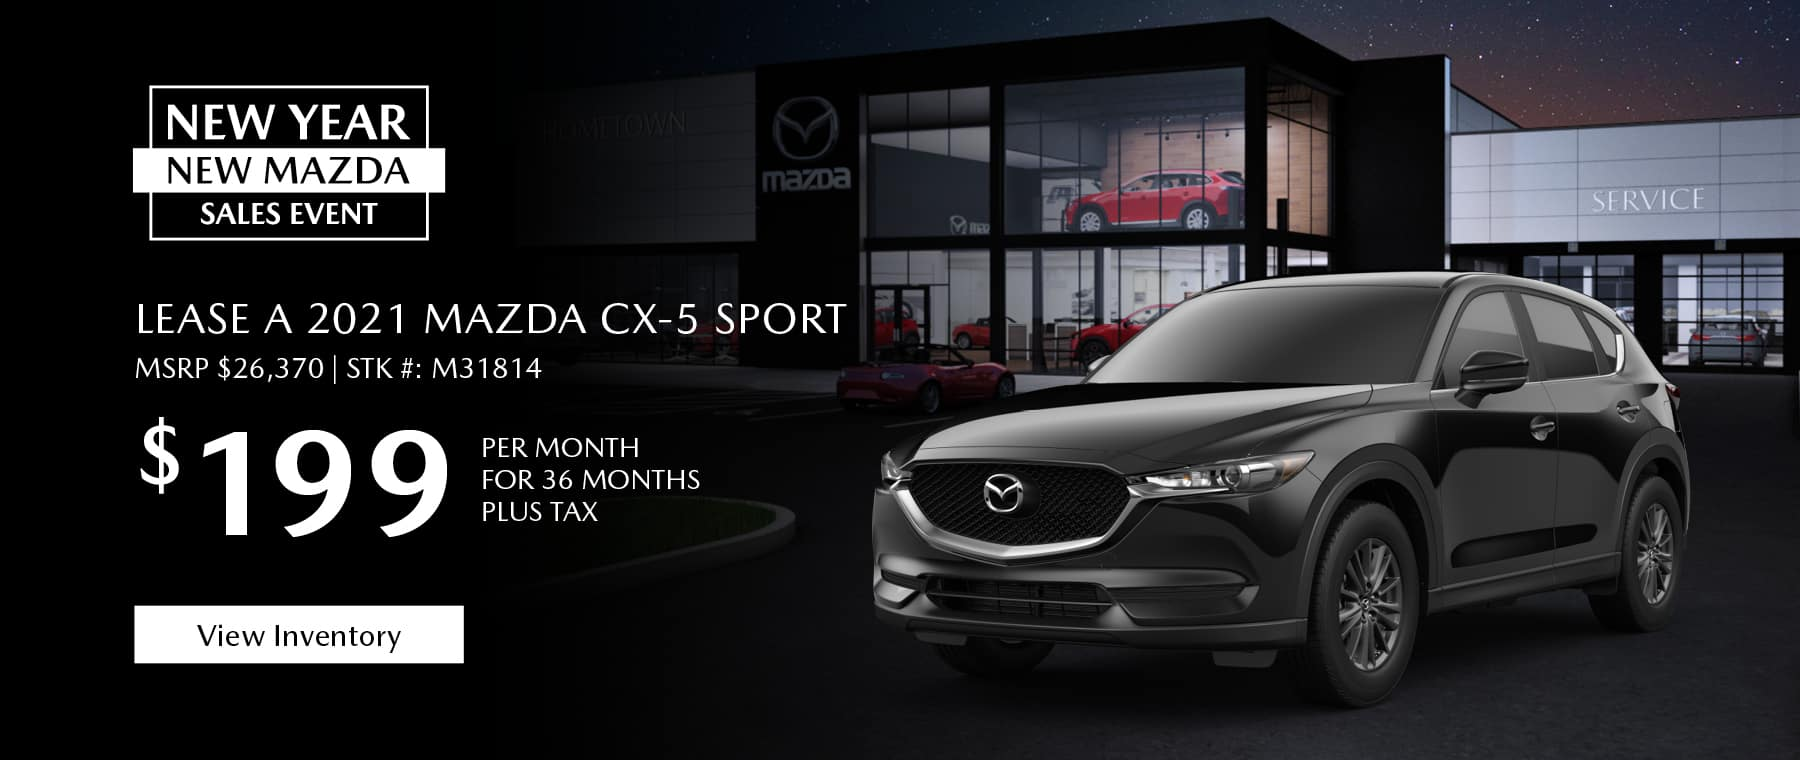 Lease the 2021 Mazda CX-5 for $199 per month, plus tax for 36 months. Click or tap here to view our inventory.